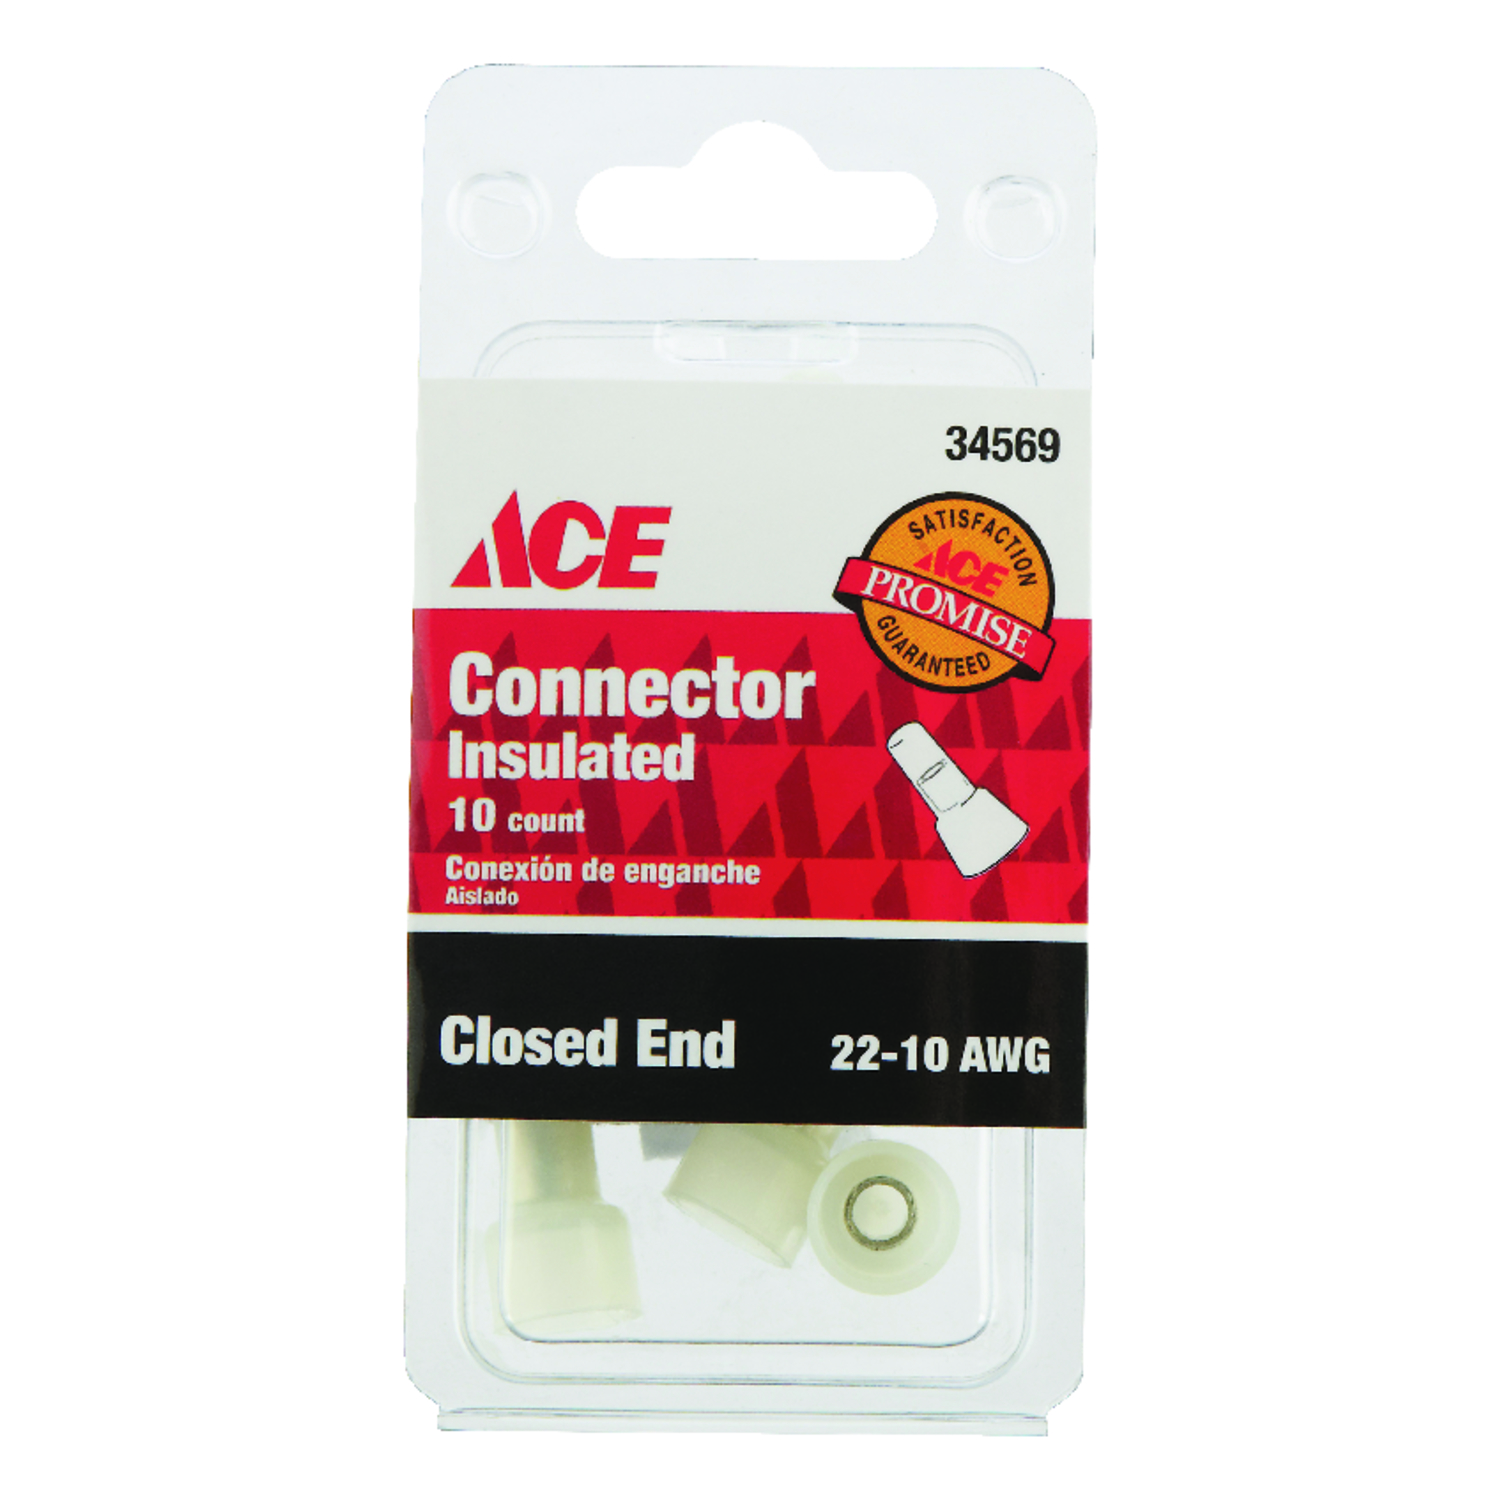 Ace  22-10 AWG Closed End Connector  10  Insulated Wire